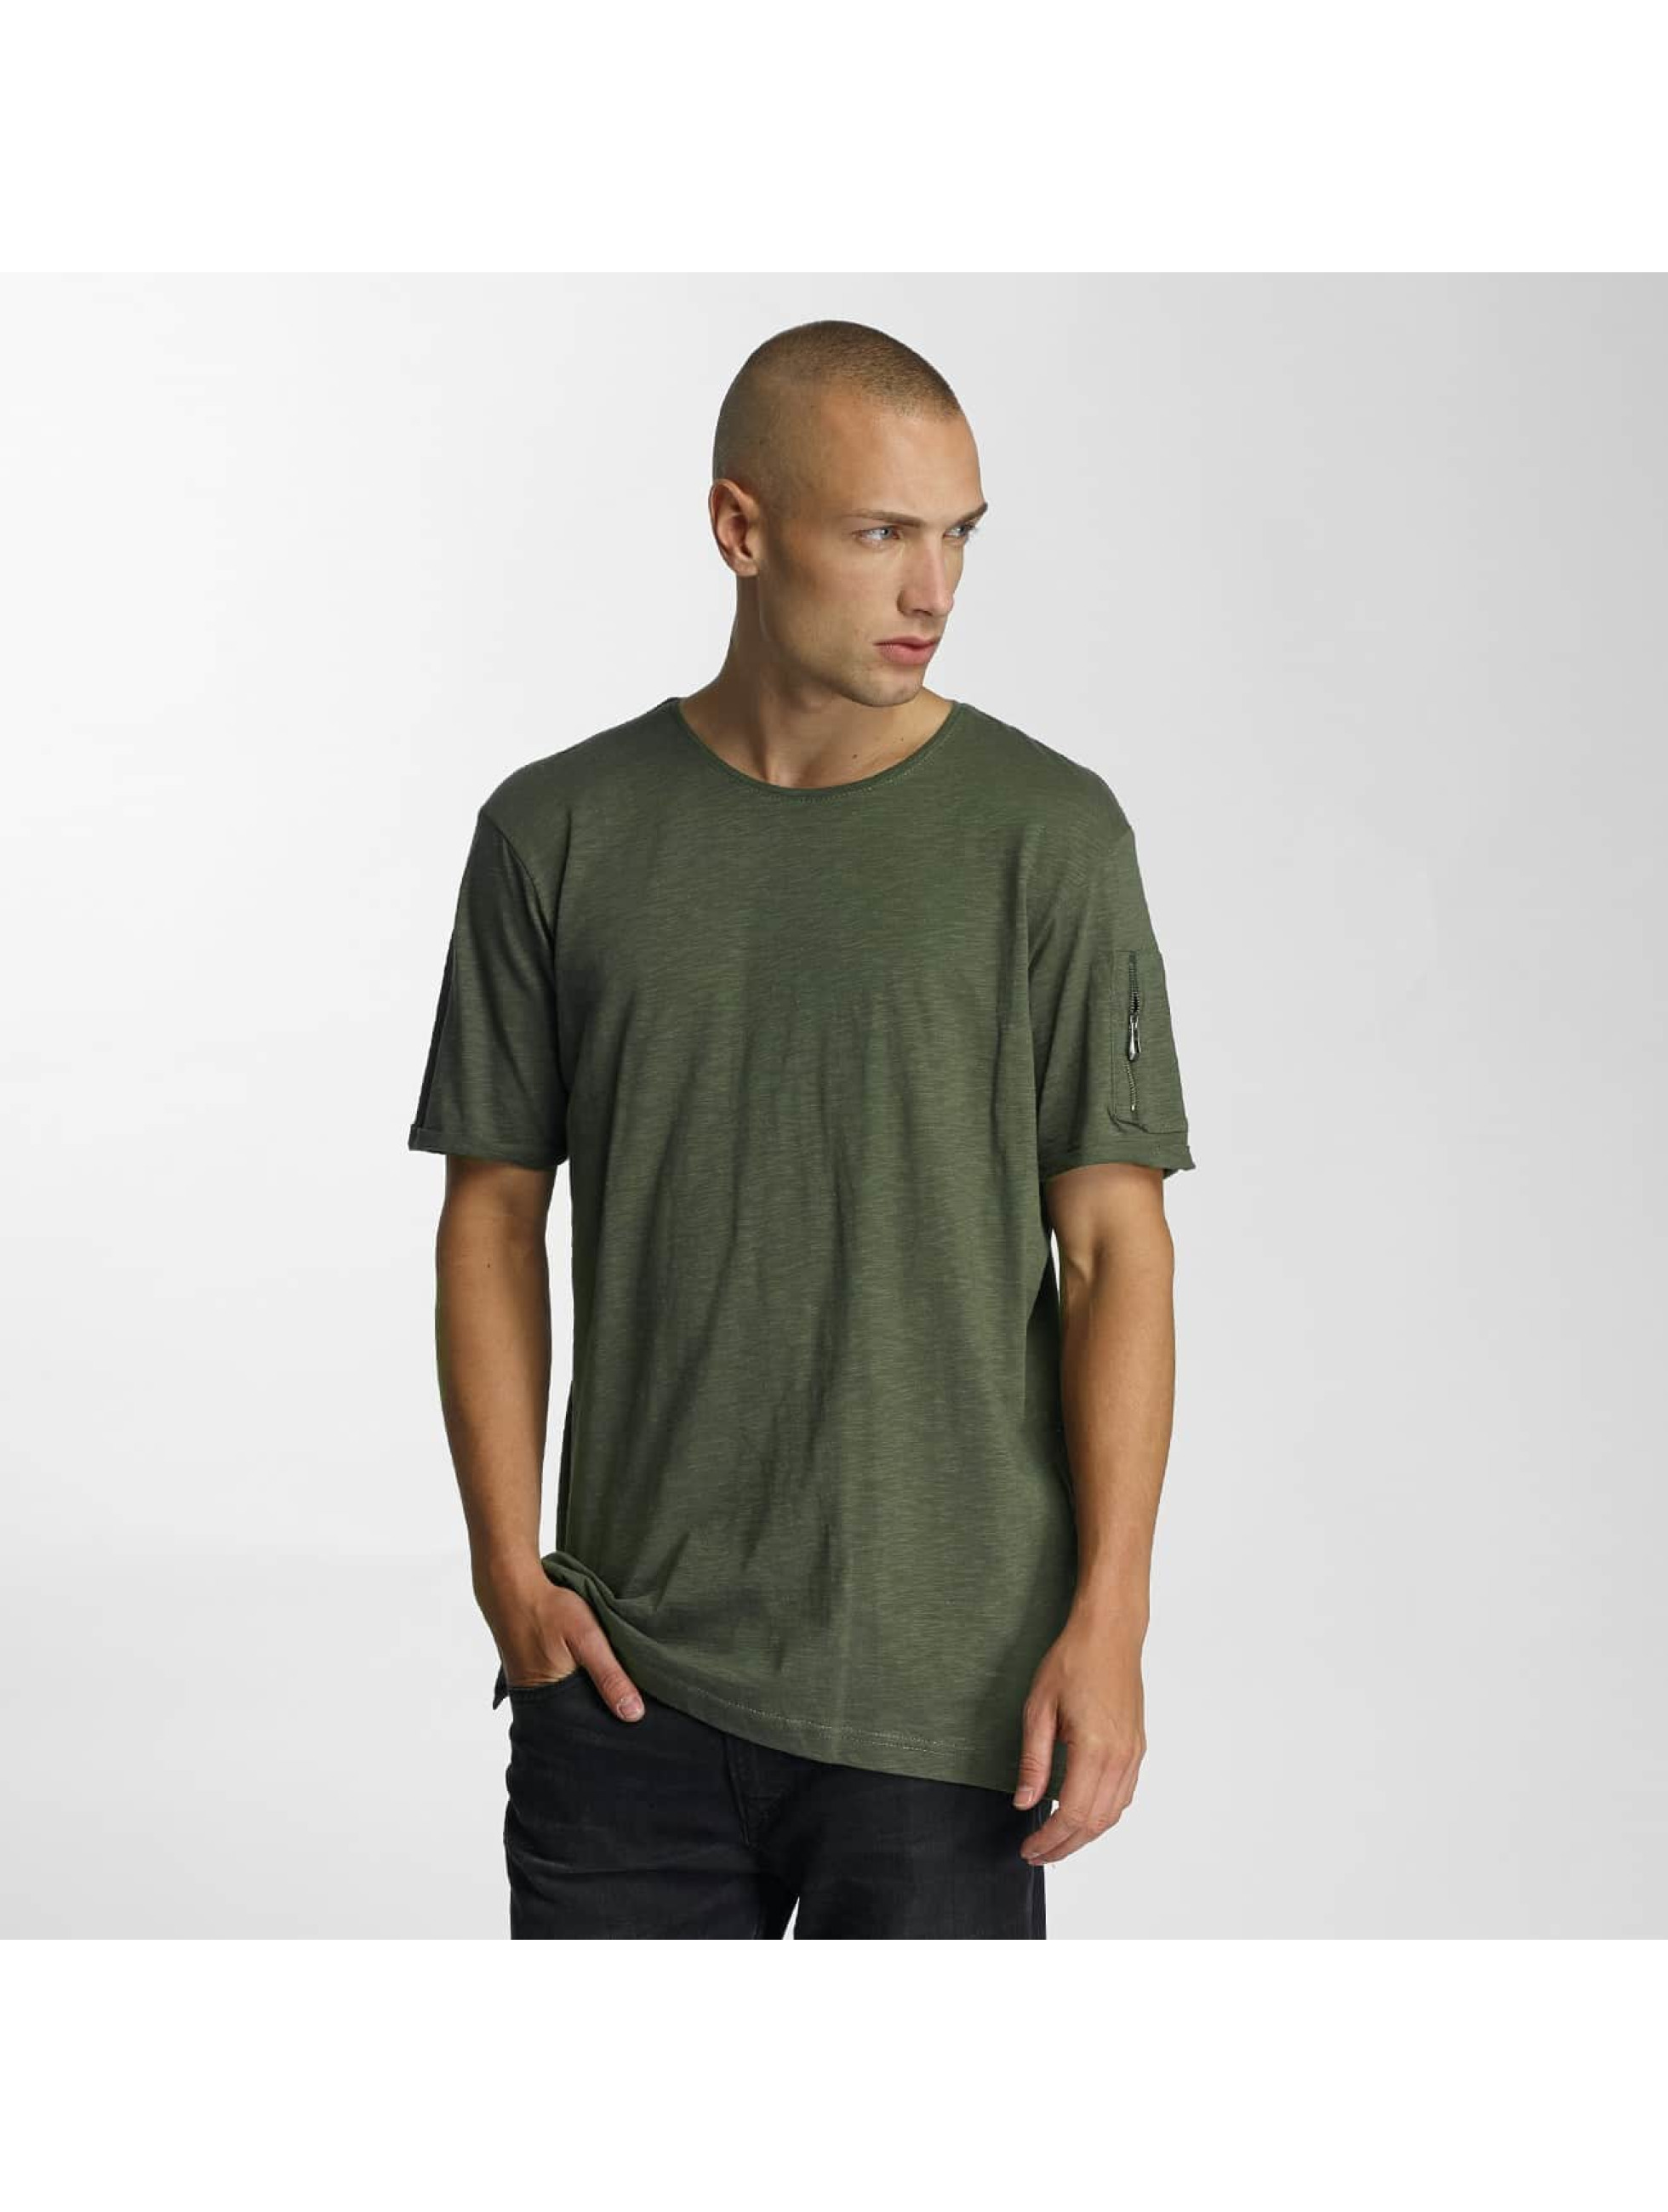 T-Shirt Haora in olive